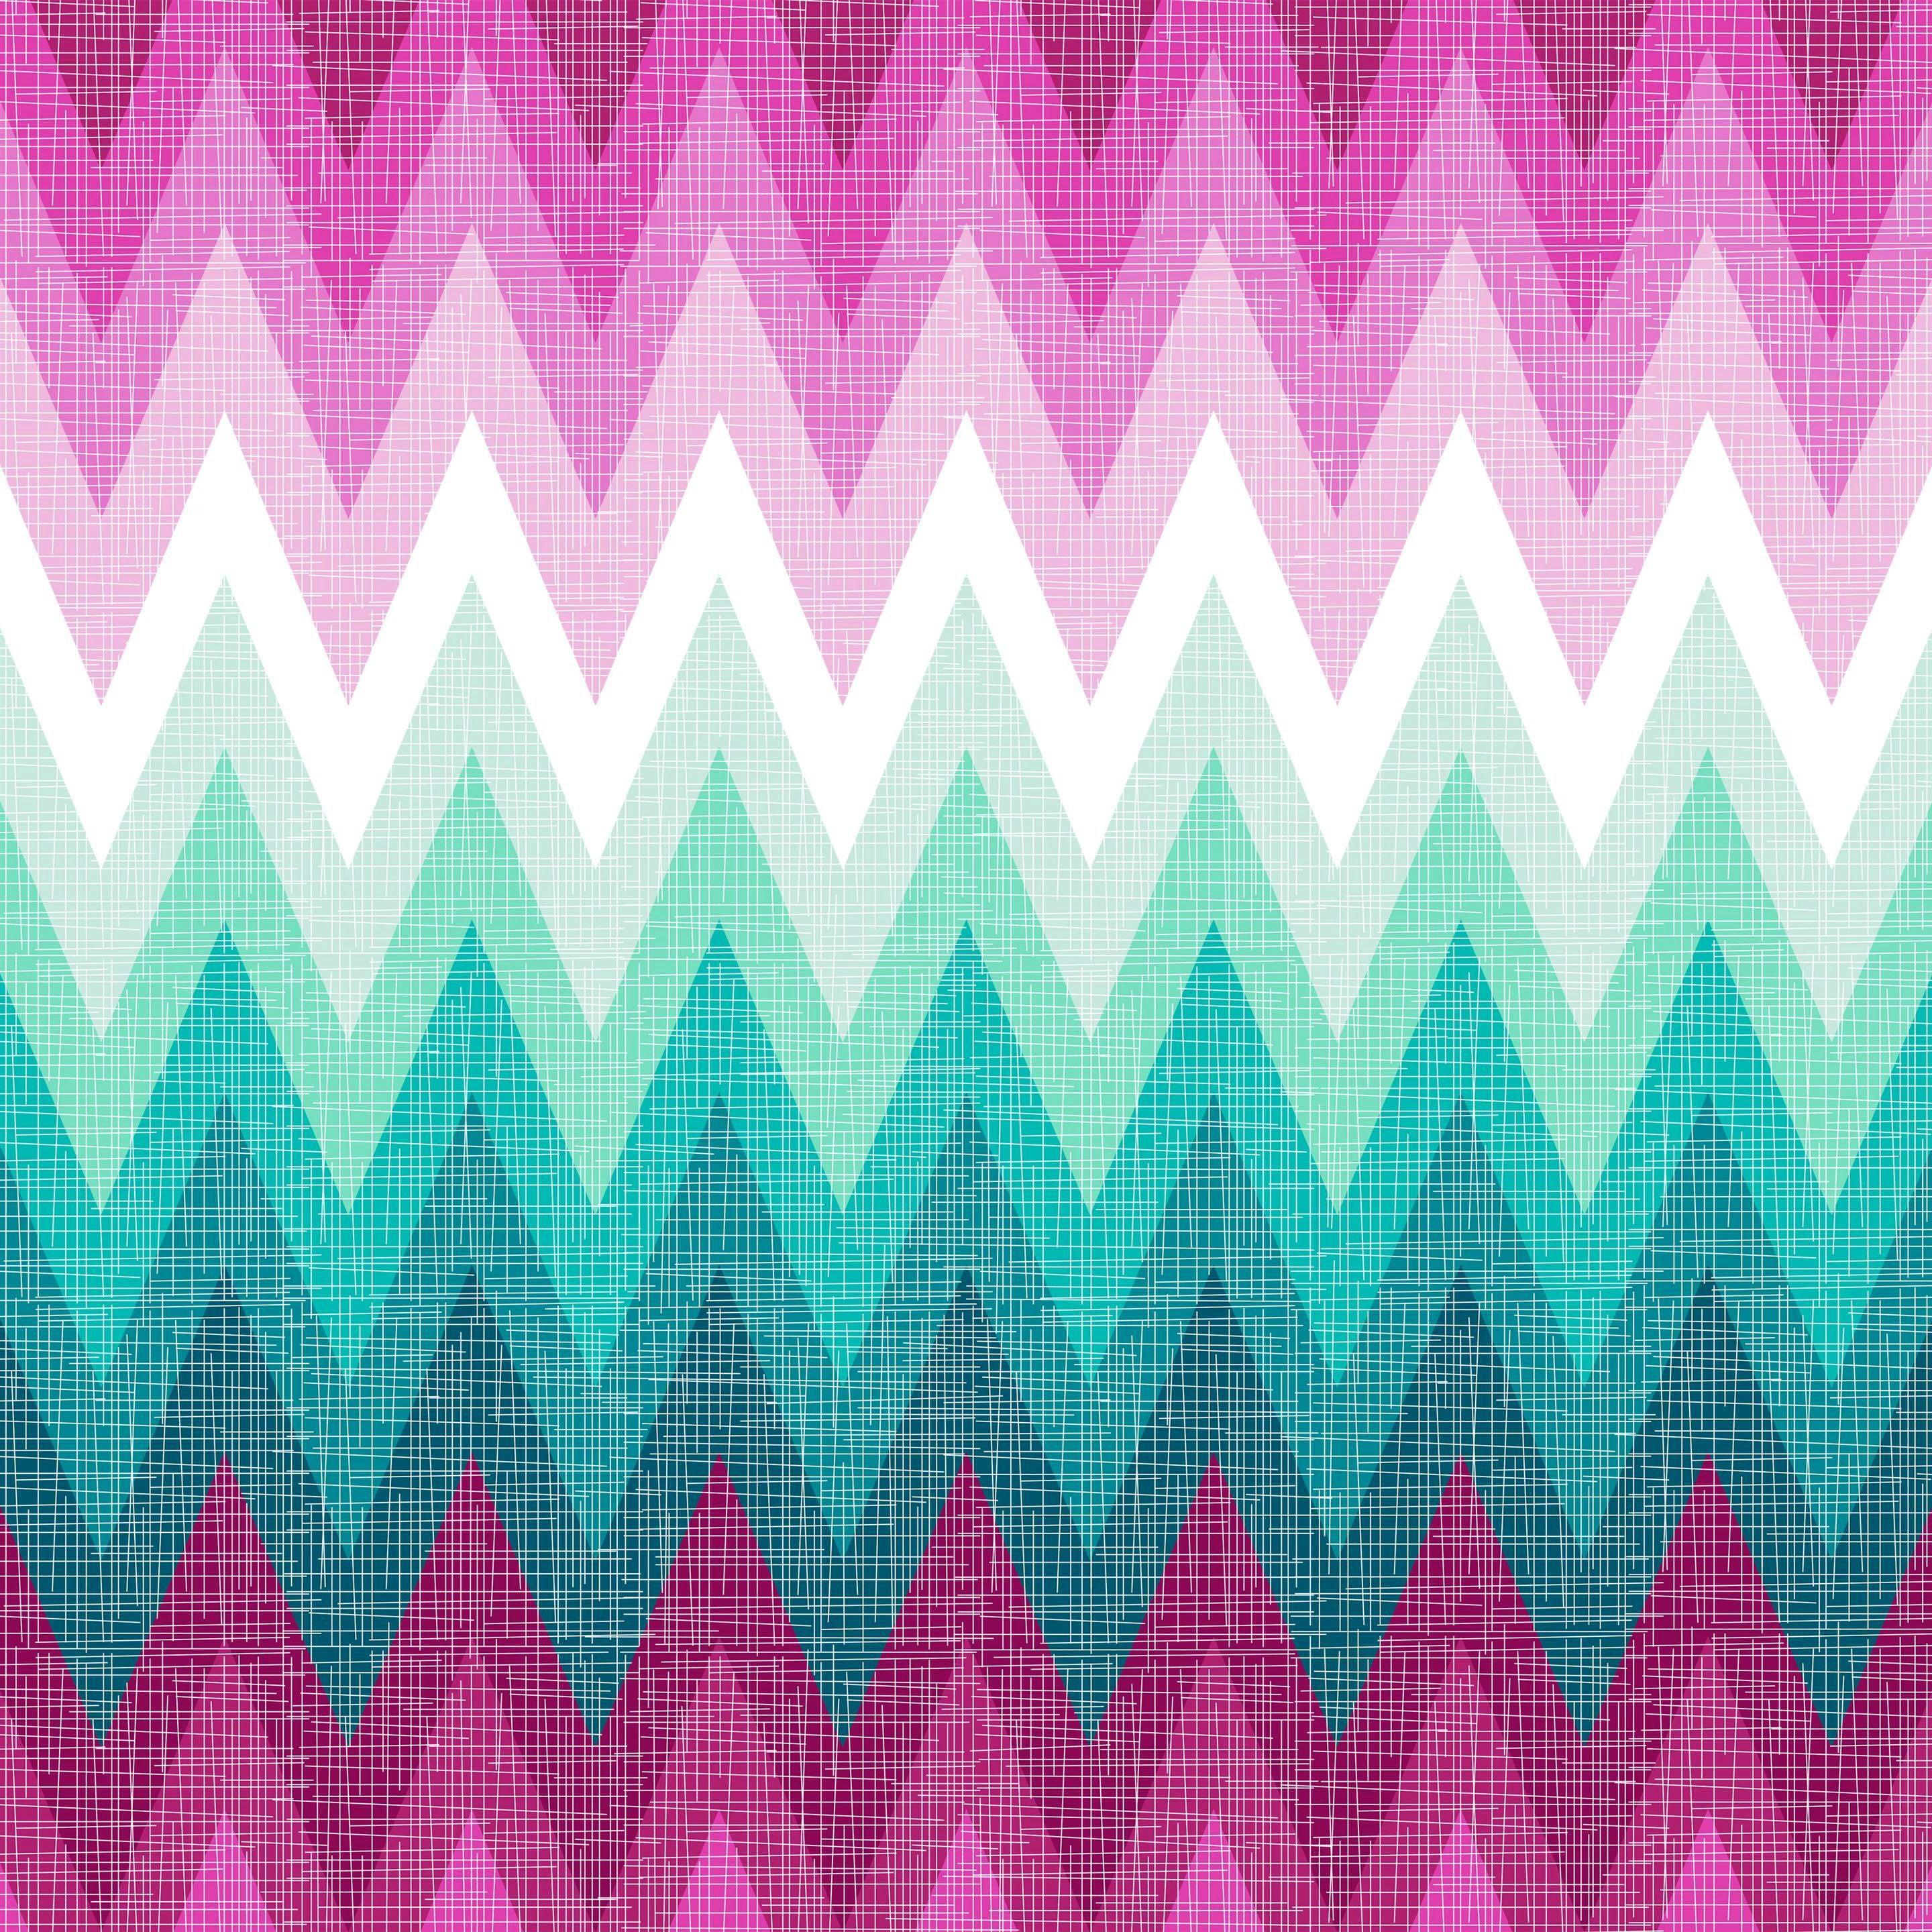 Iphone wallpapers tumblr chevron -  Iphone And Ipad Backgrounds